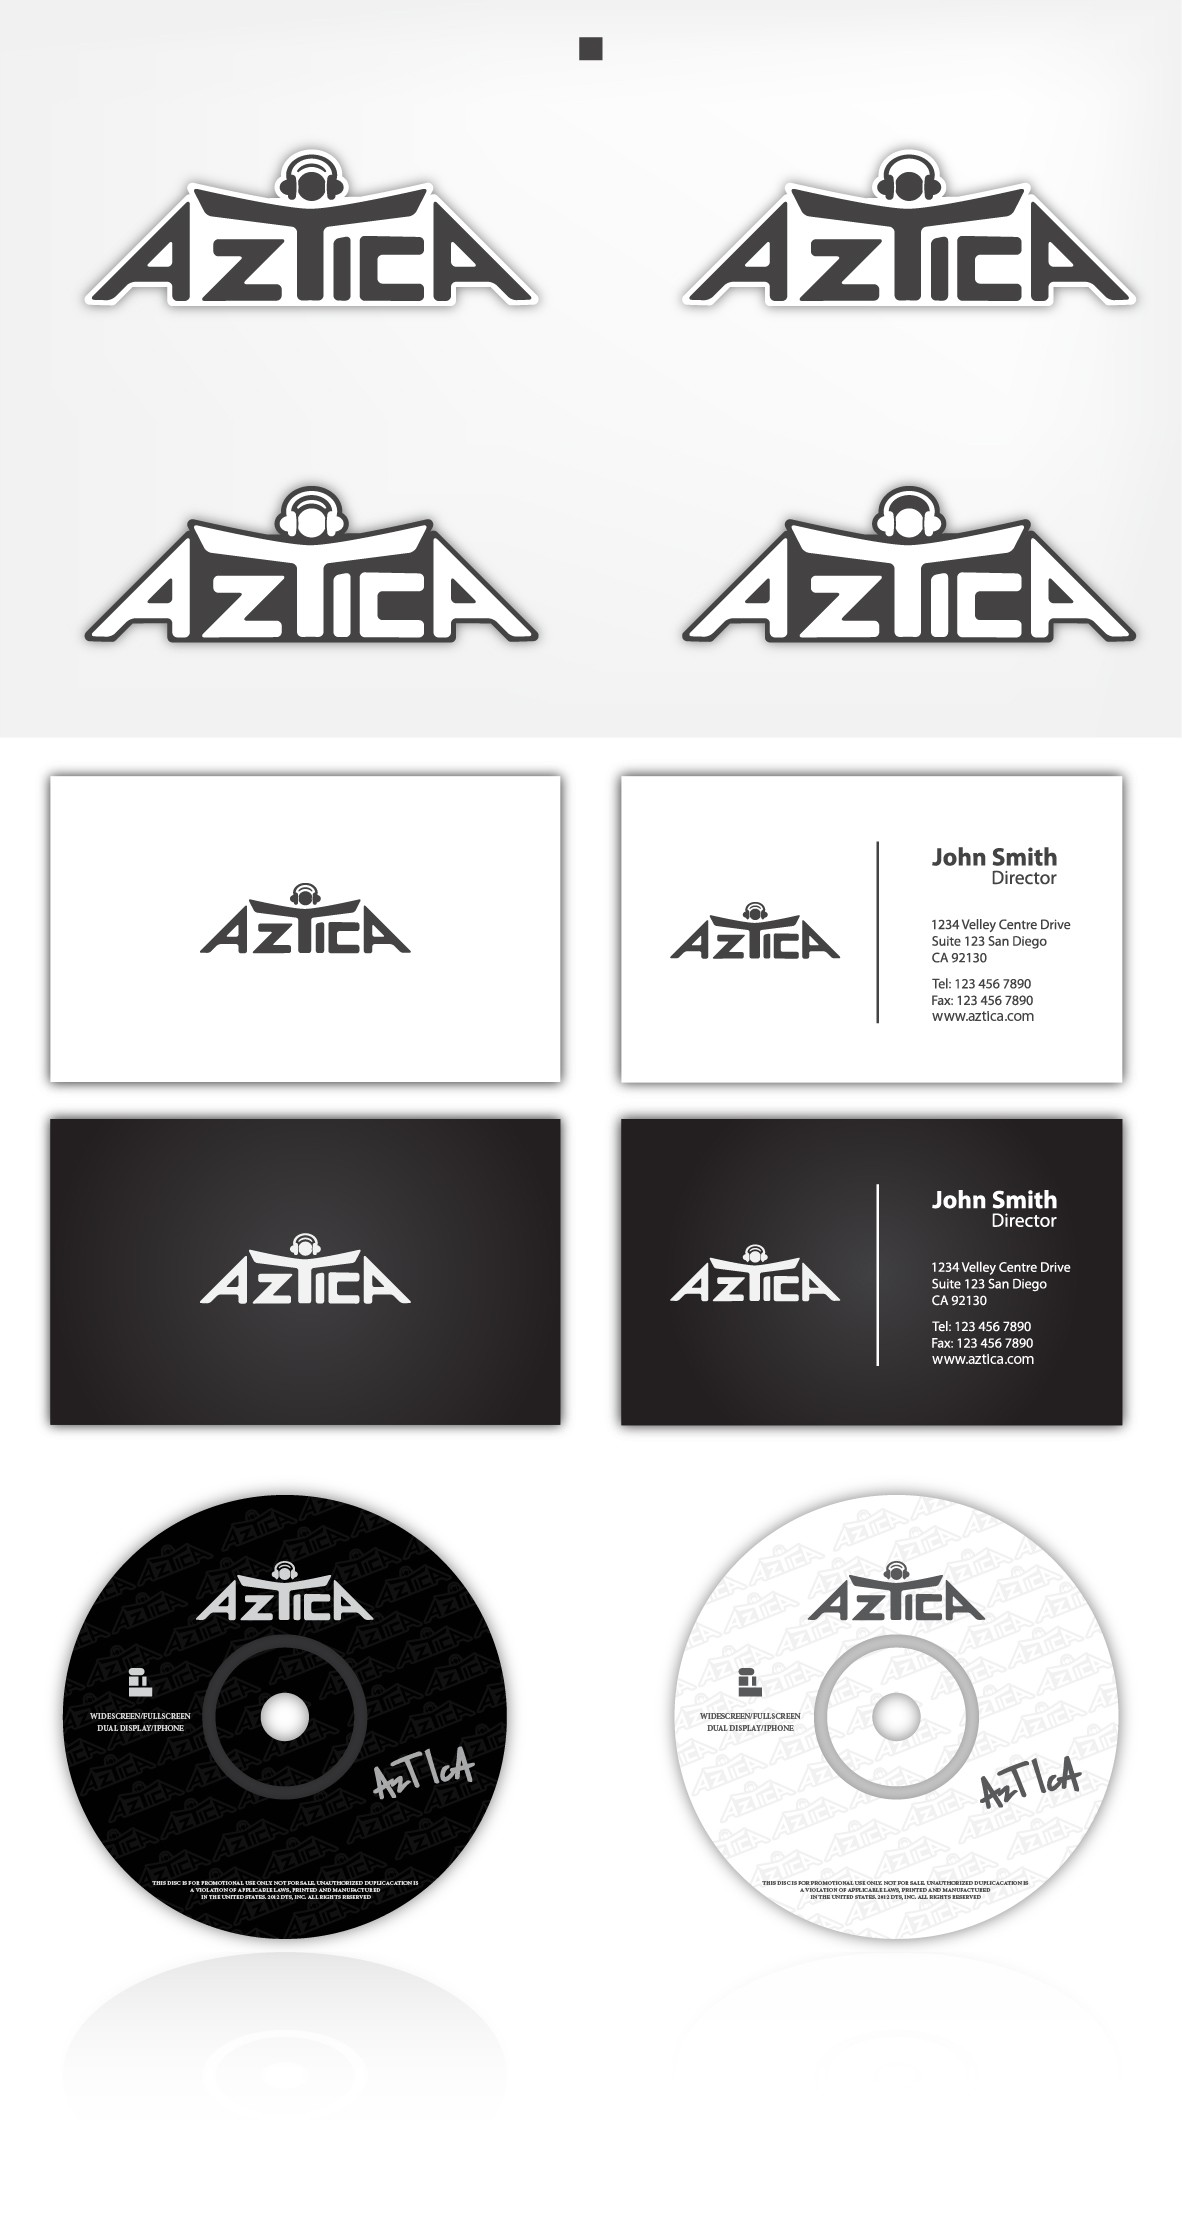 AzTIcA needs a new logo